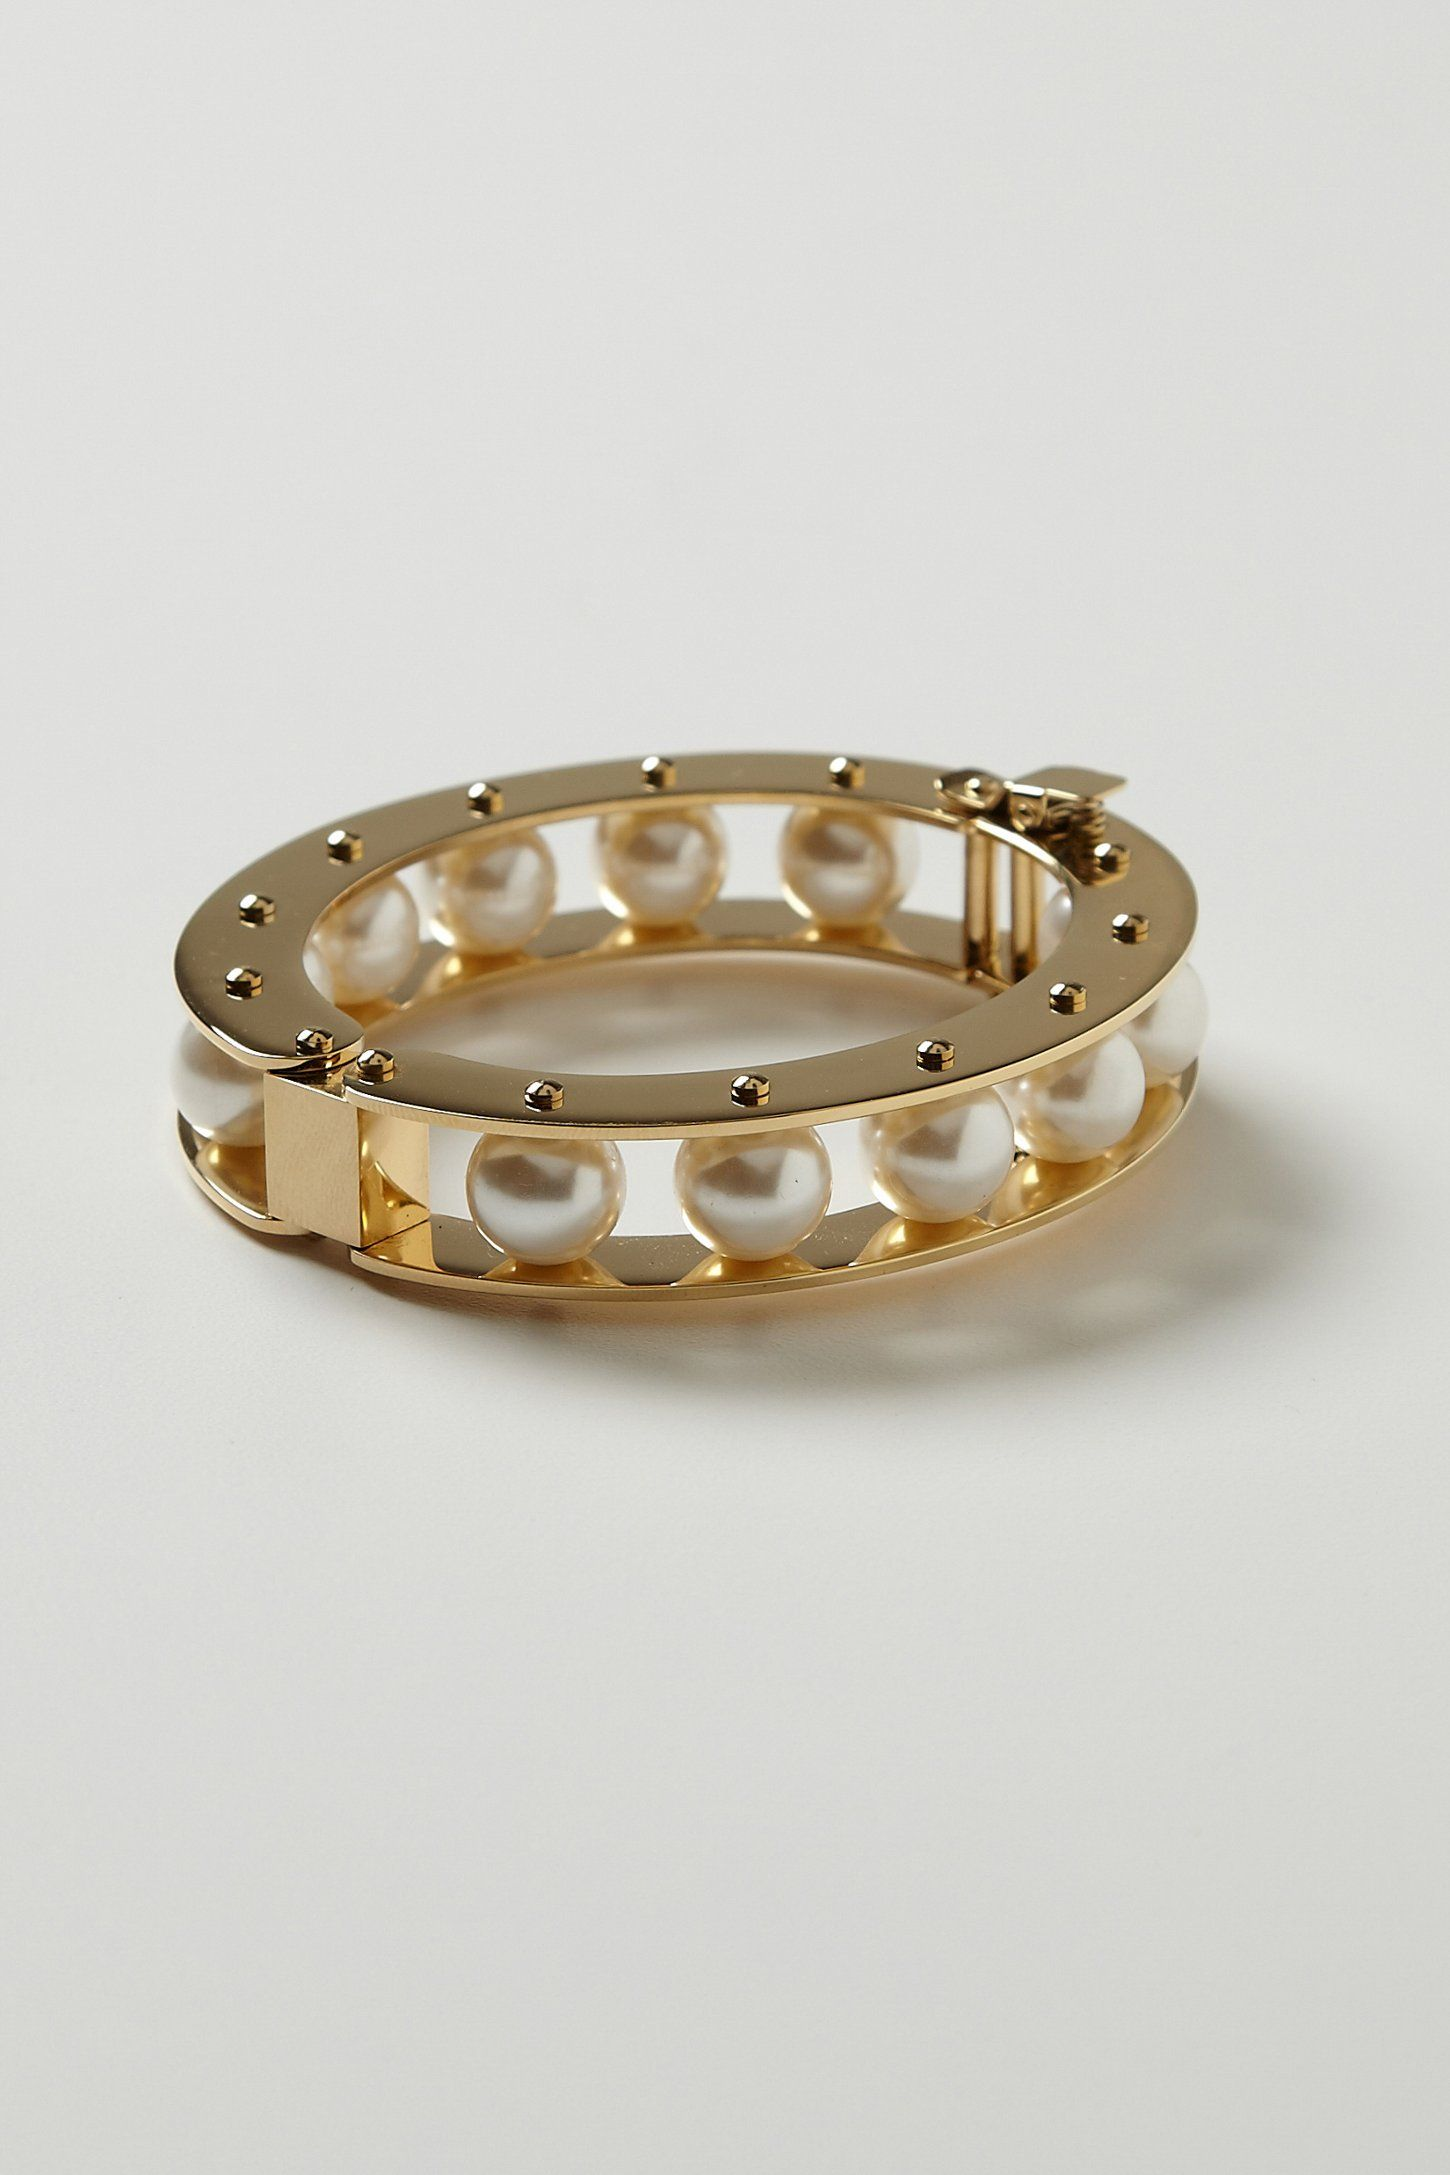 Lele Sadoughi, Eshe Pearl Bracelet, 14K gold plated steel, glass